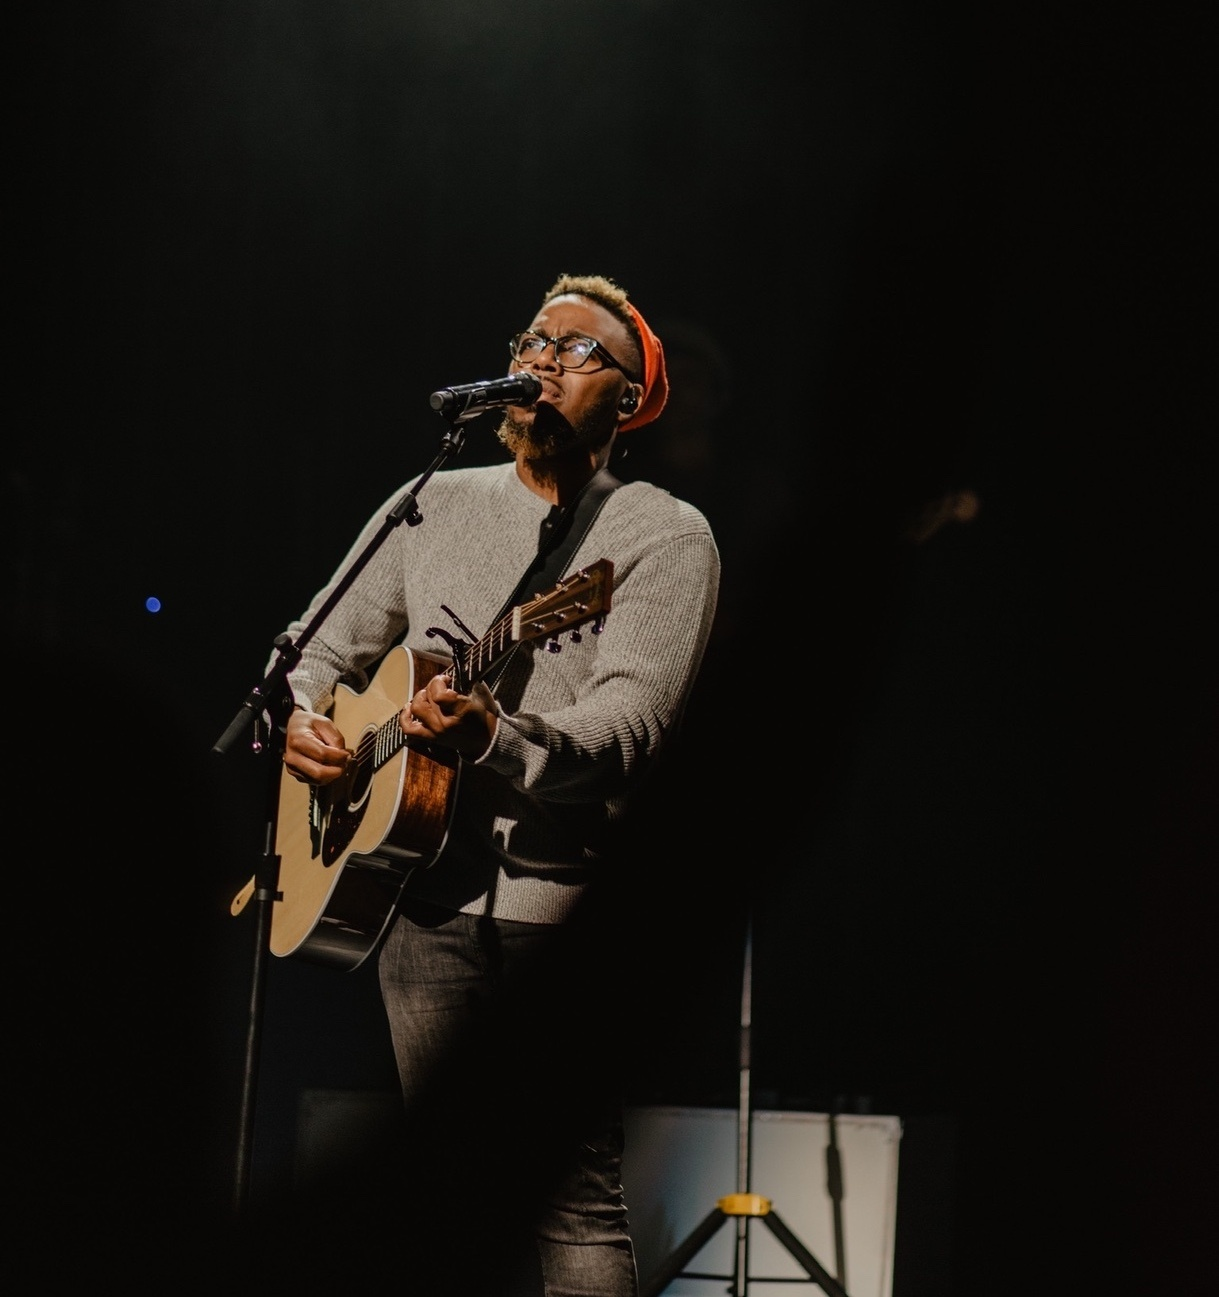 Man on stage singing and playing the guitar